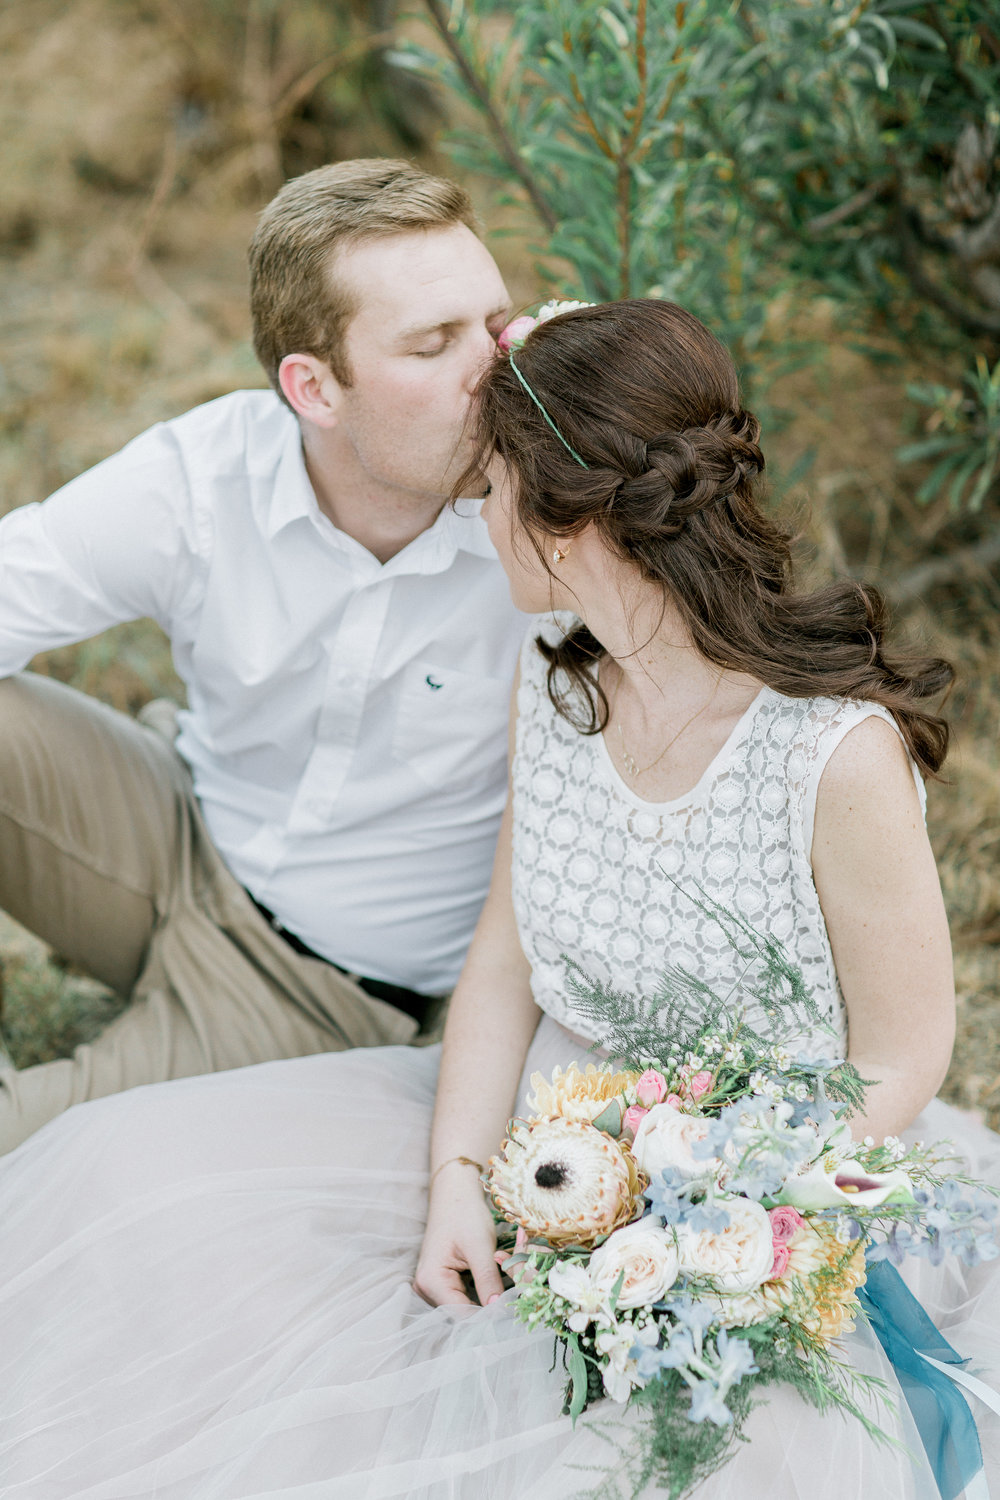 South africa wedding photographer clareece smit photography24.jpg